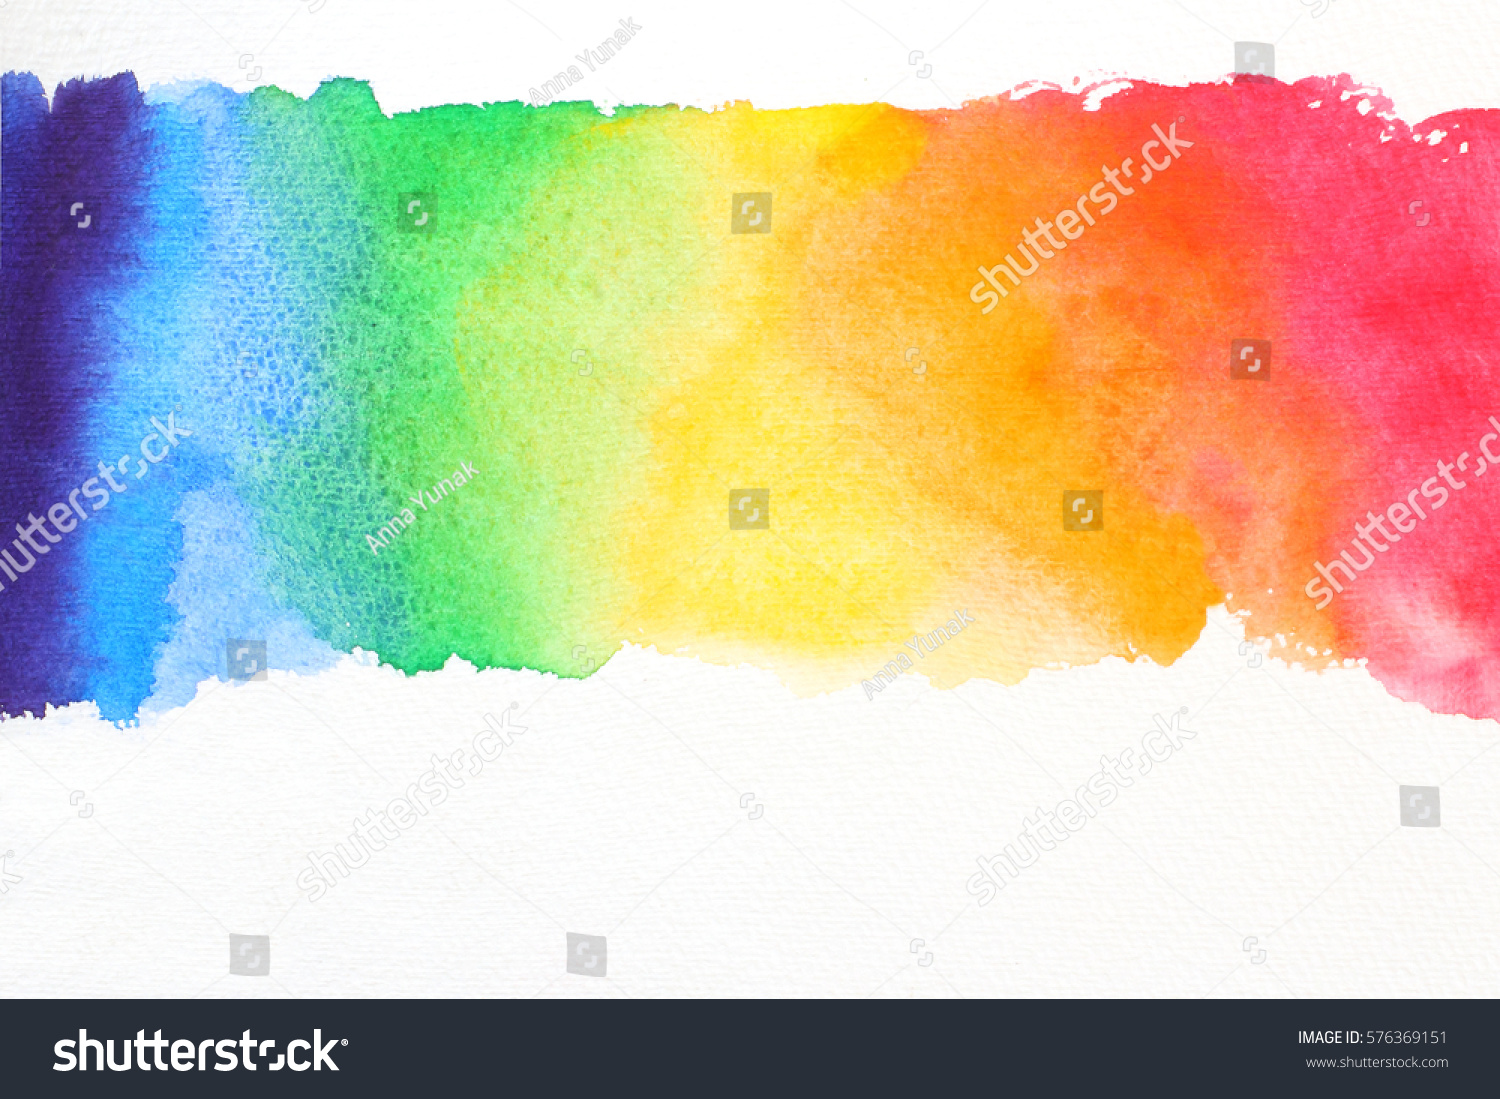 line watercolor texture in rainbow colors on white paper  #576369151